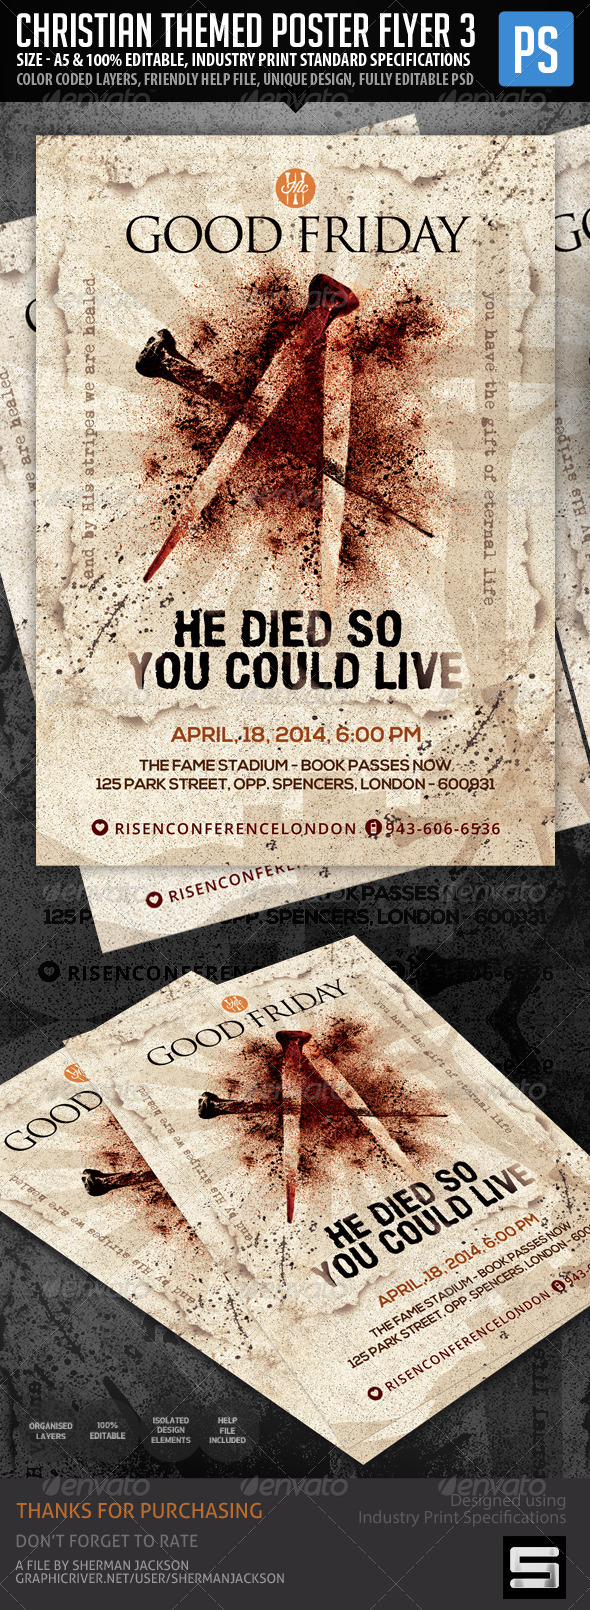 GraphicRiver Church Christian Themed Poster Flyer Vol.3 7206108